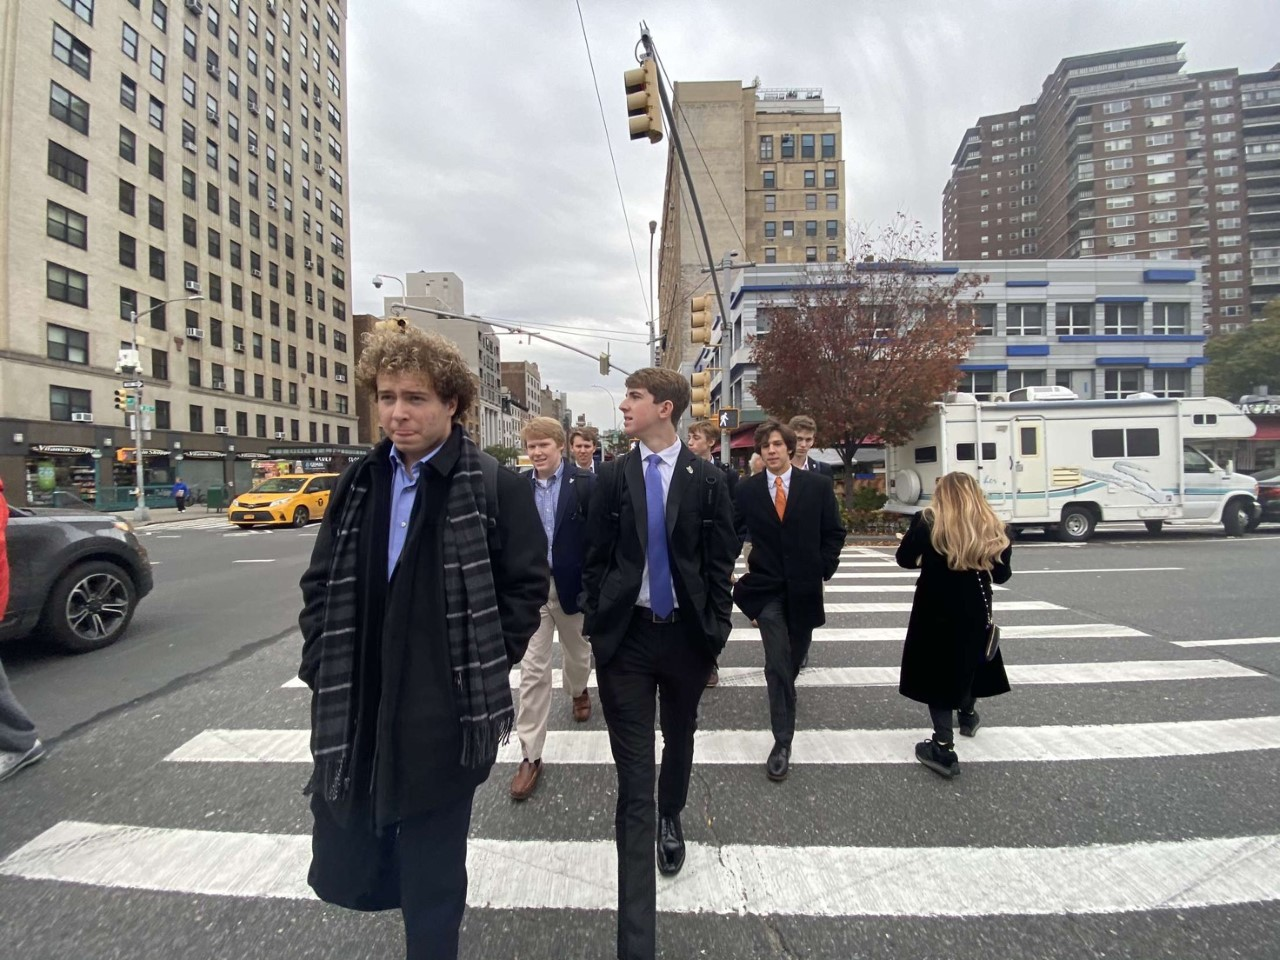 Seniors Seth Roggenkamp and Nick Quarnstrom cross the street before a meeting with ABInbev